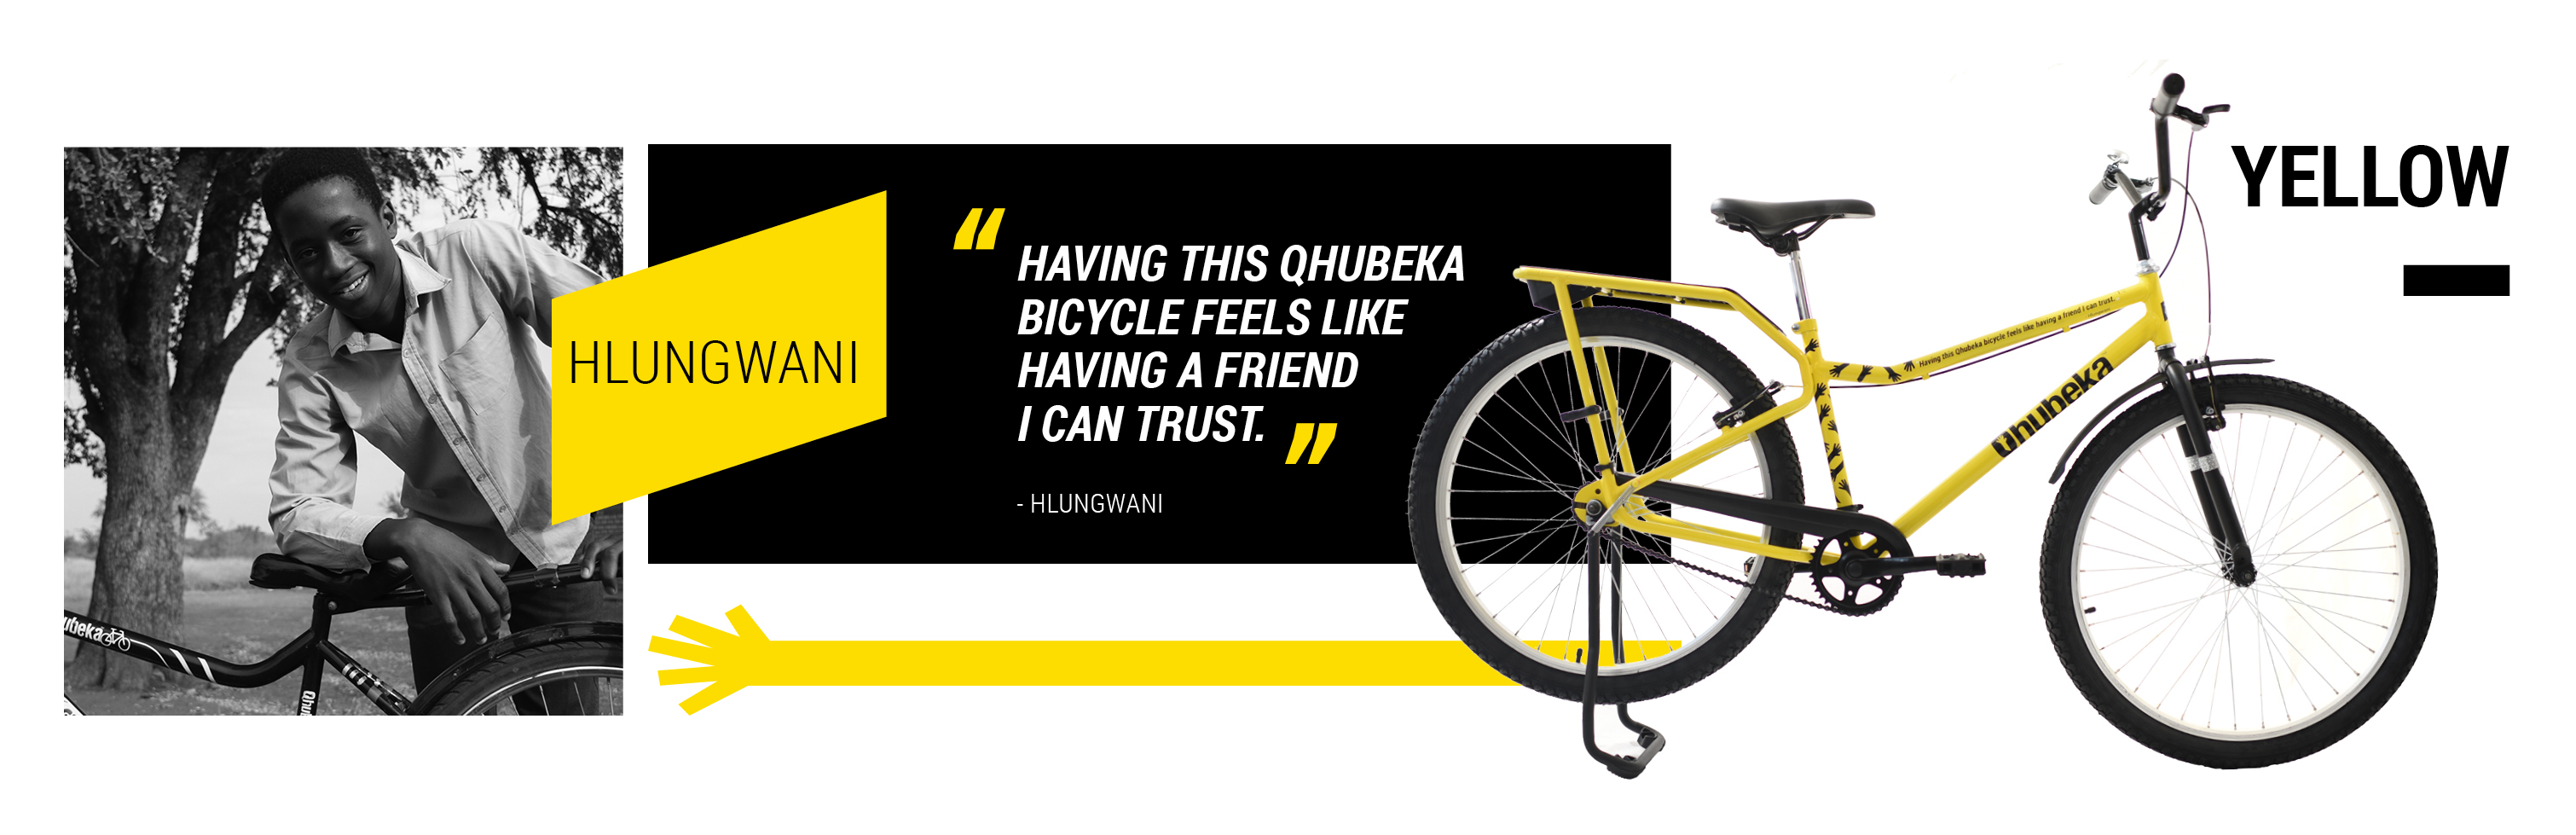 """Yellow Jersey"""" Qhubeka Bicycle Recovered at Tour de France"""